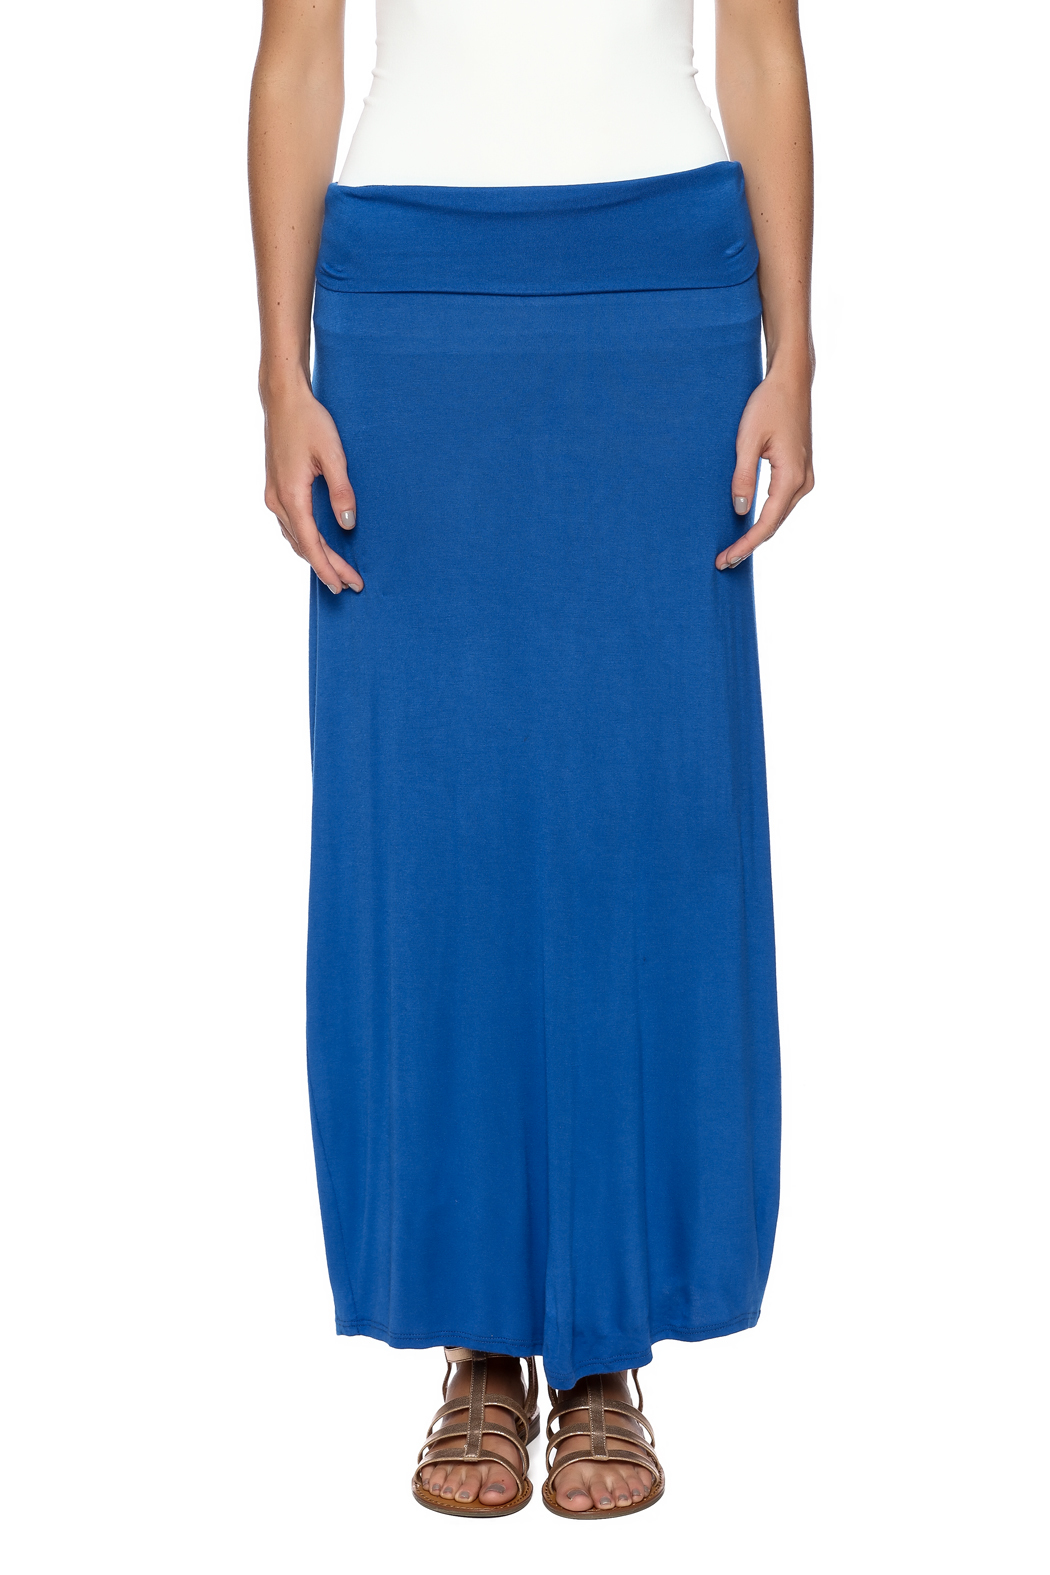 s hangover creations indiana maxi skirt from indiana